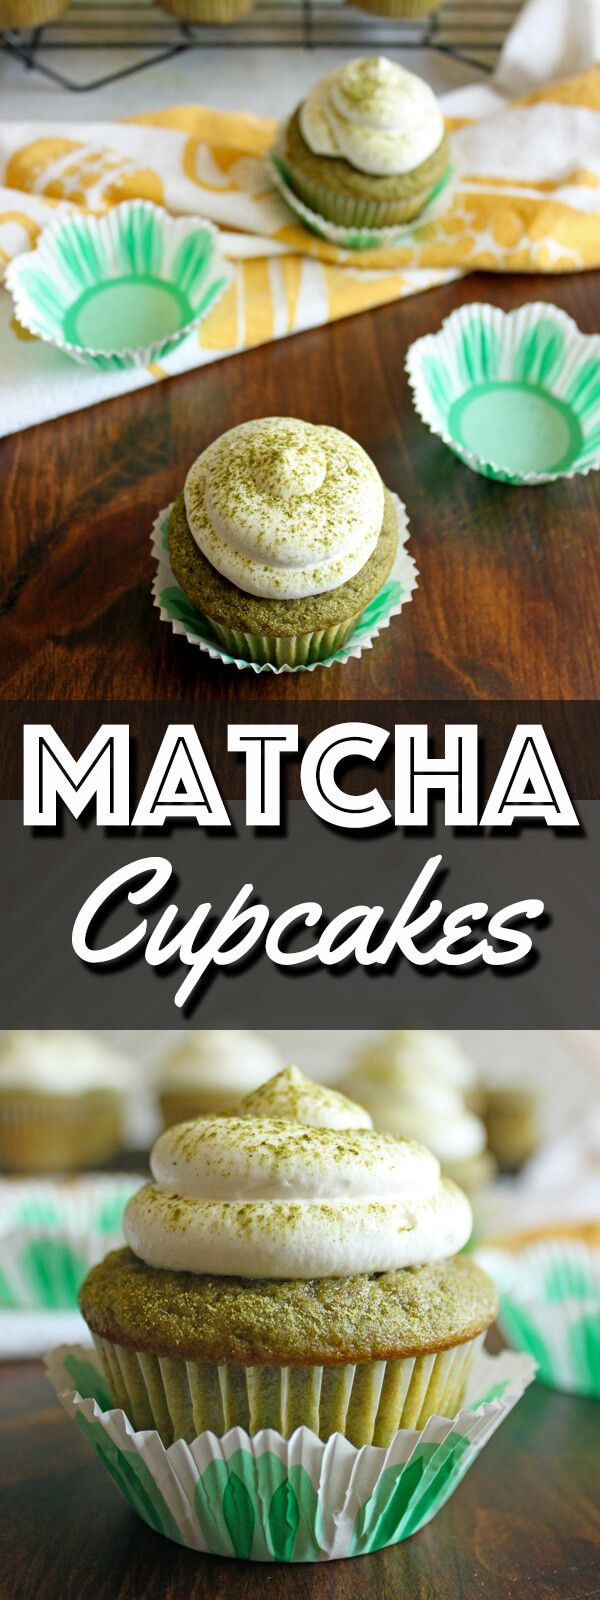 These delicate Matcha Green Tea Cupcakes are topped with light and fluffy whipped cream. They taste just like a Starbucks Matcha green tea Frappuccino!   wildwildwhisk.com #matcha #greentea #cupcakes